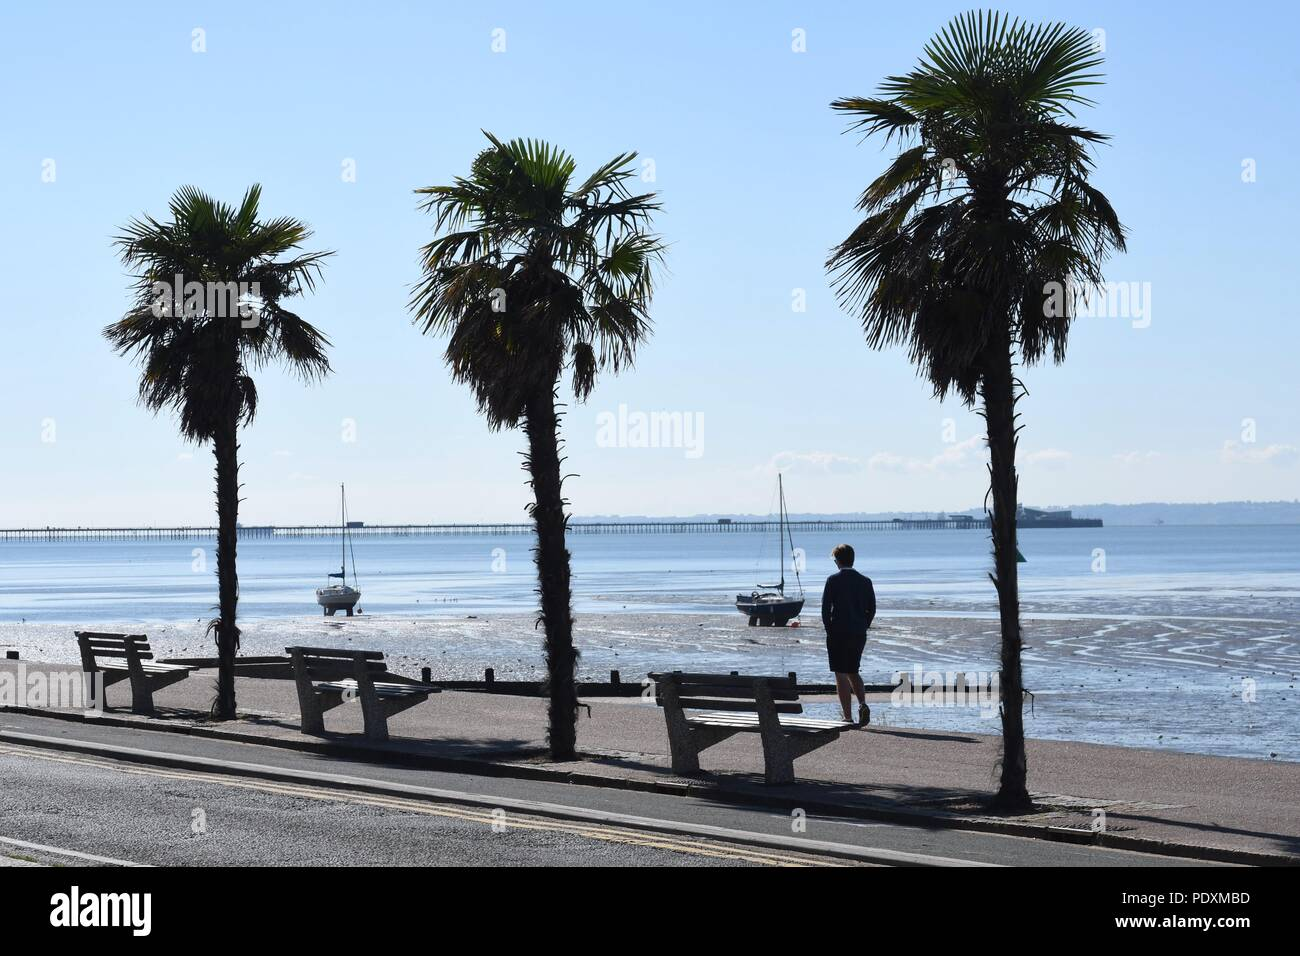 Southend On Sea Es Uk 11th August 2018 Uk Weather A Warm Start To The Day In Southend A View Of A Man Walking Along The Sea Front Credit Ben